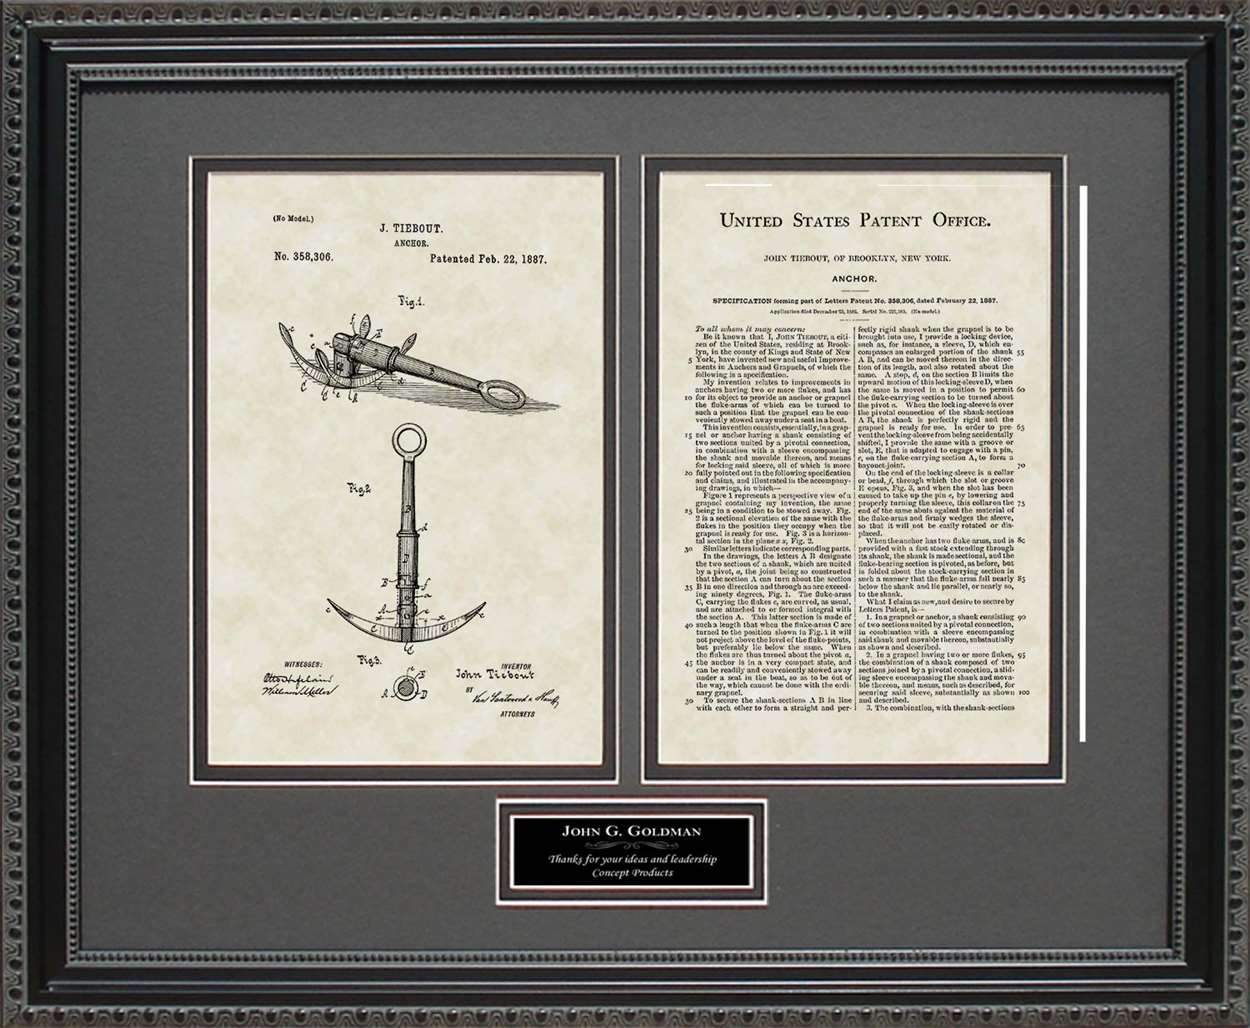 Personalized Boat Anchor Patent, Art & Copy, Tiebout, 1887